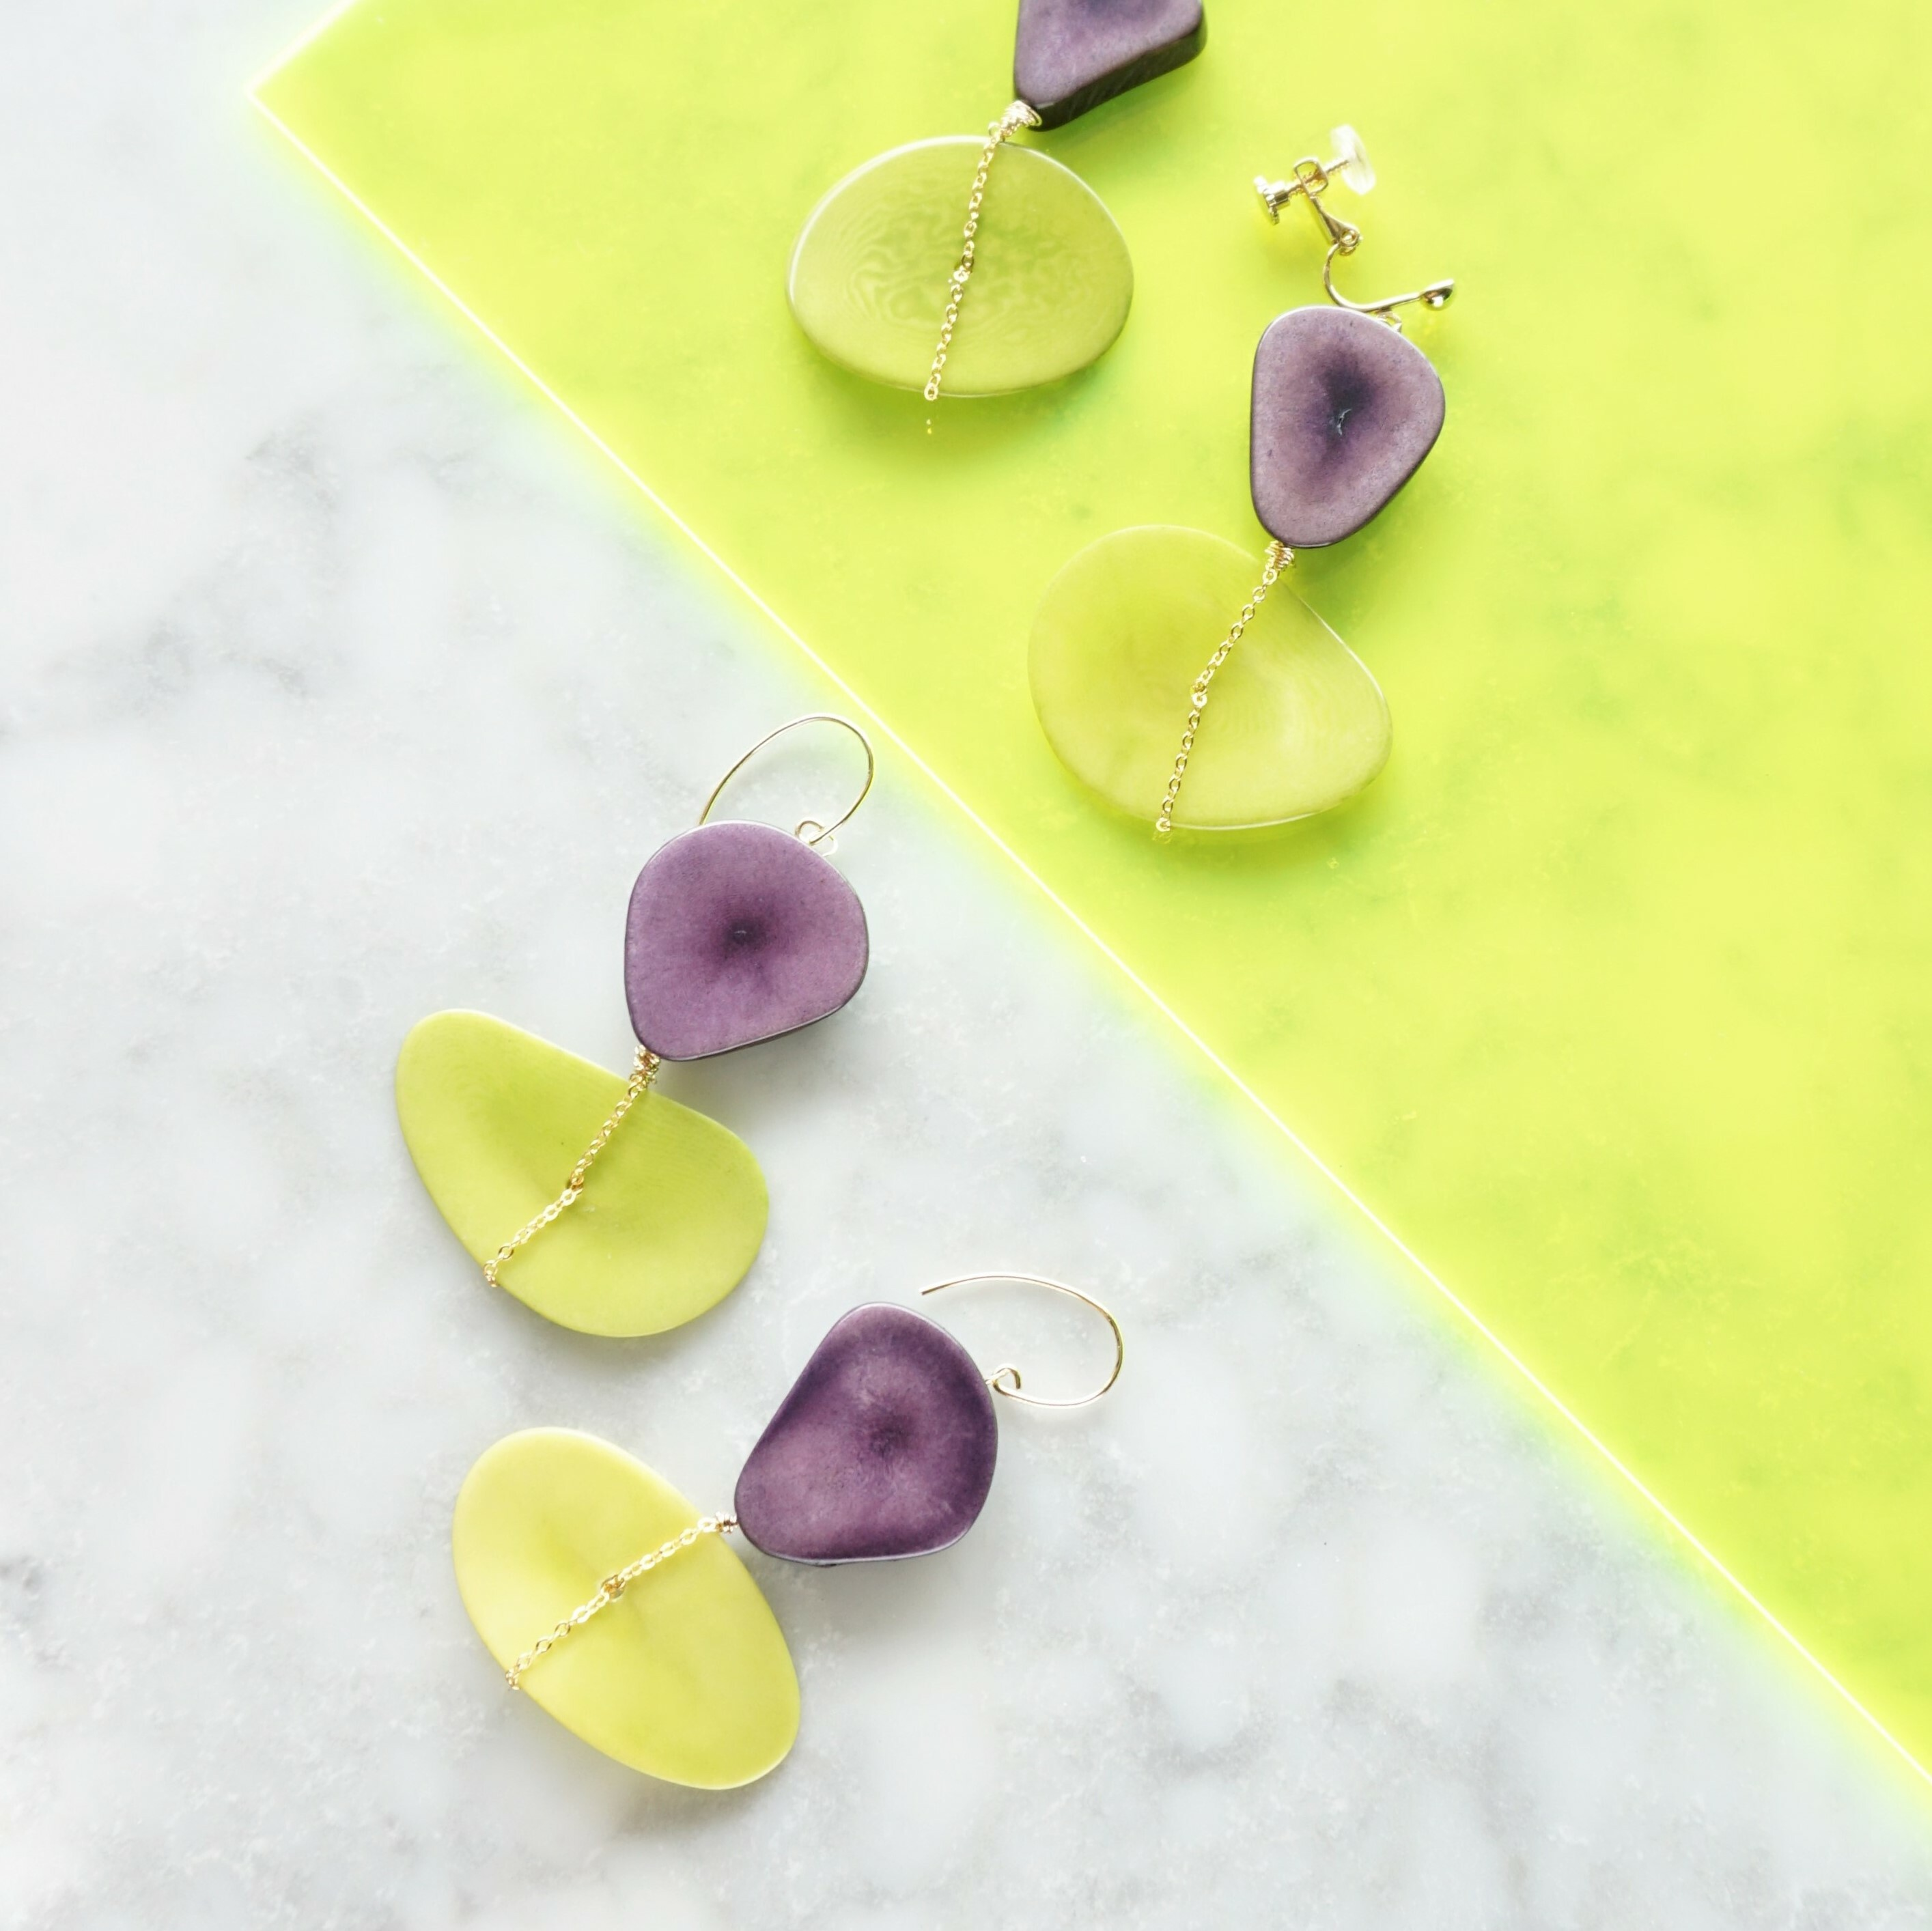 送料無料14kgf*Purple x L Green Tagua Nuts slice pierced earring